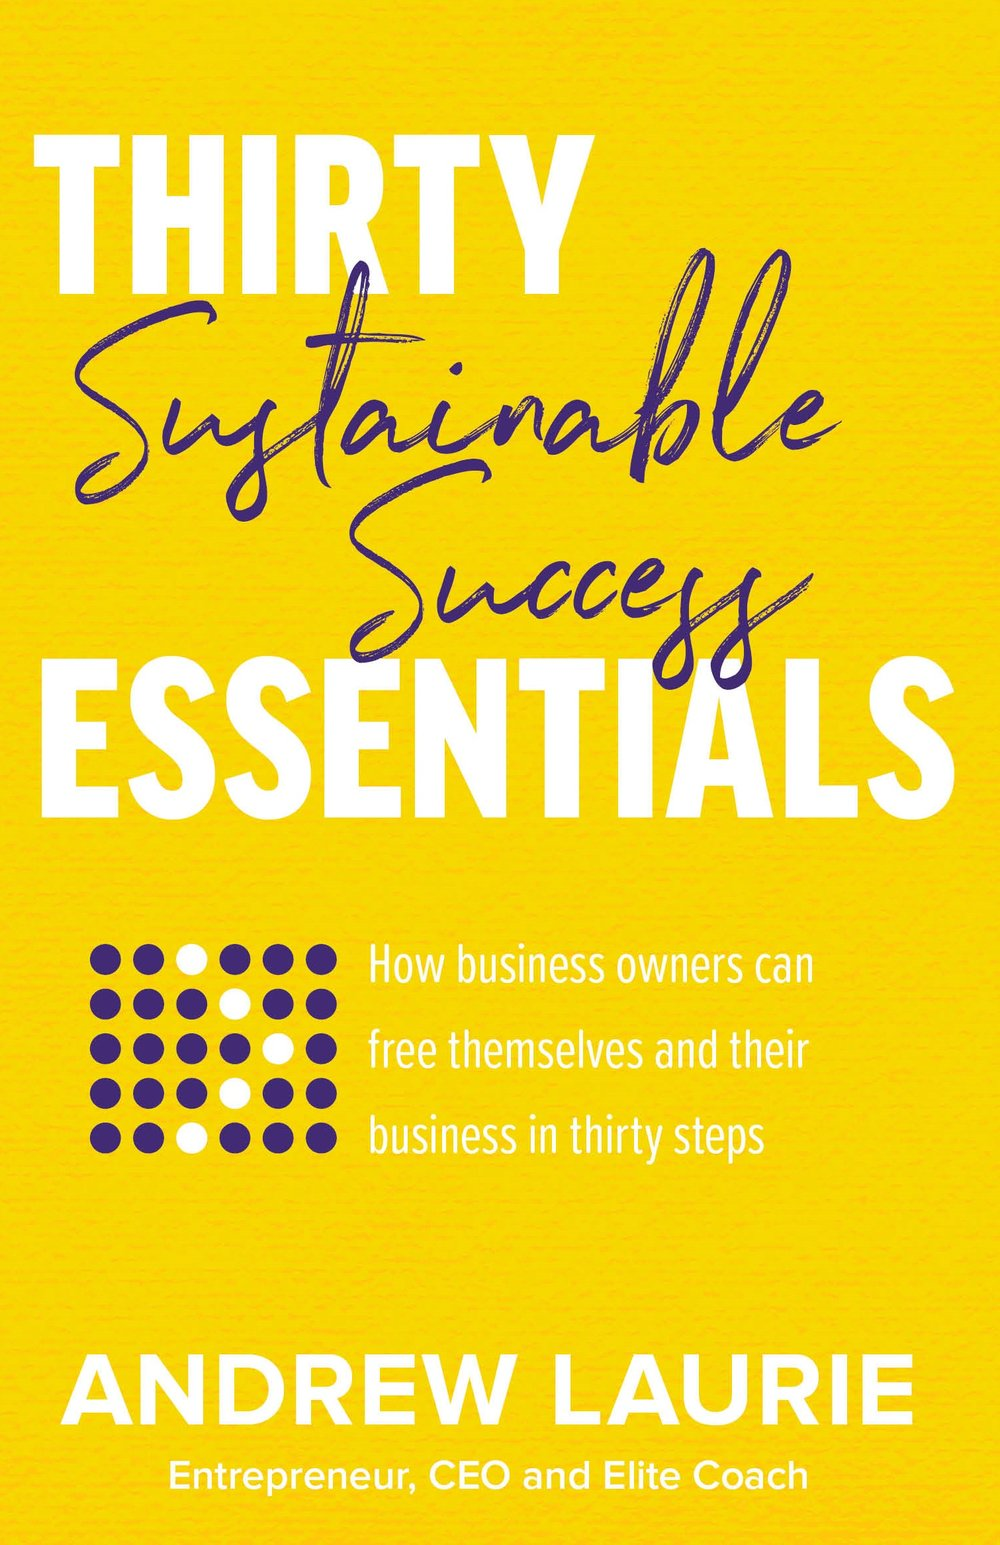 Thirty Essentials Sustainable Success